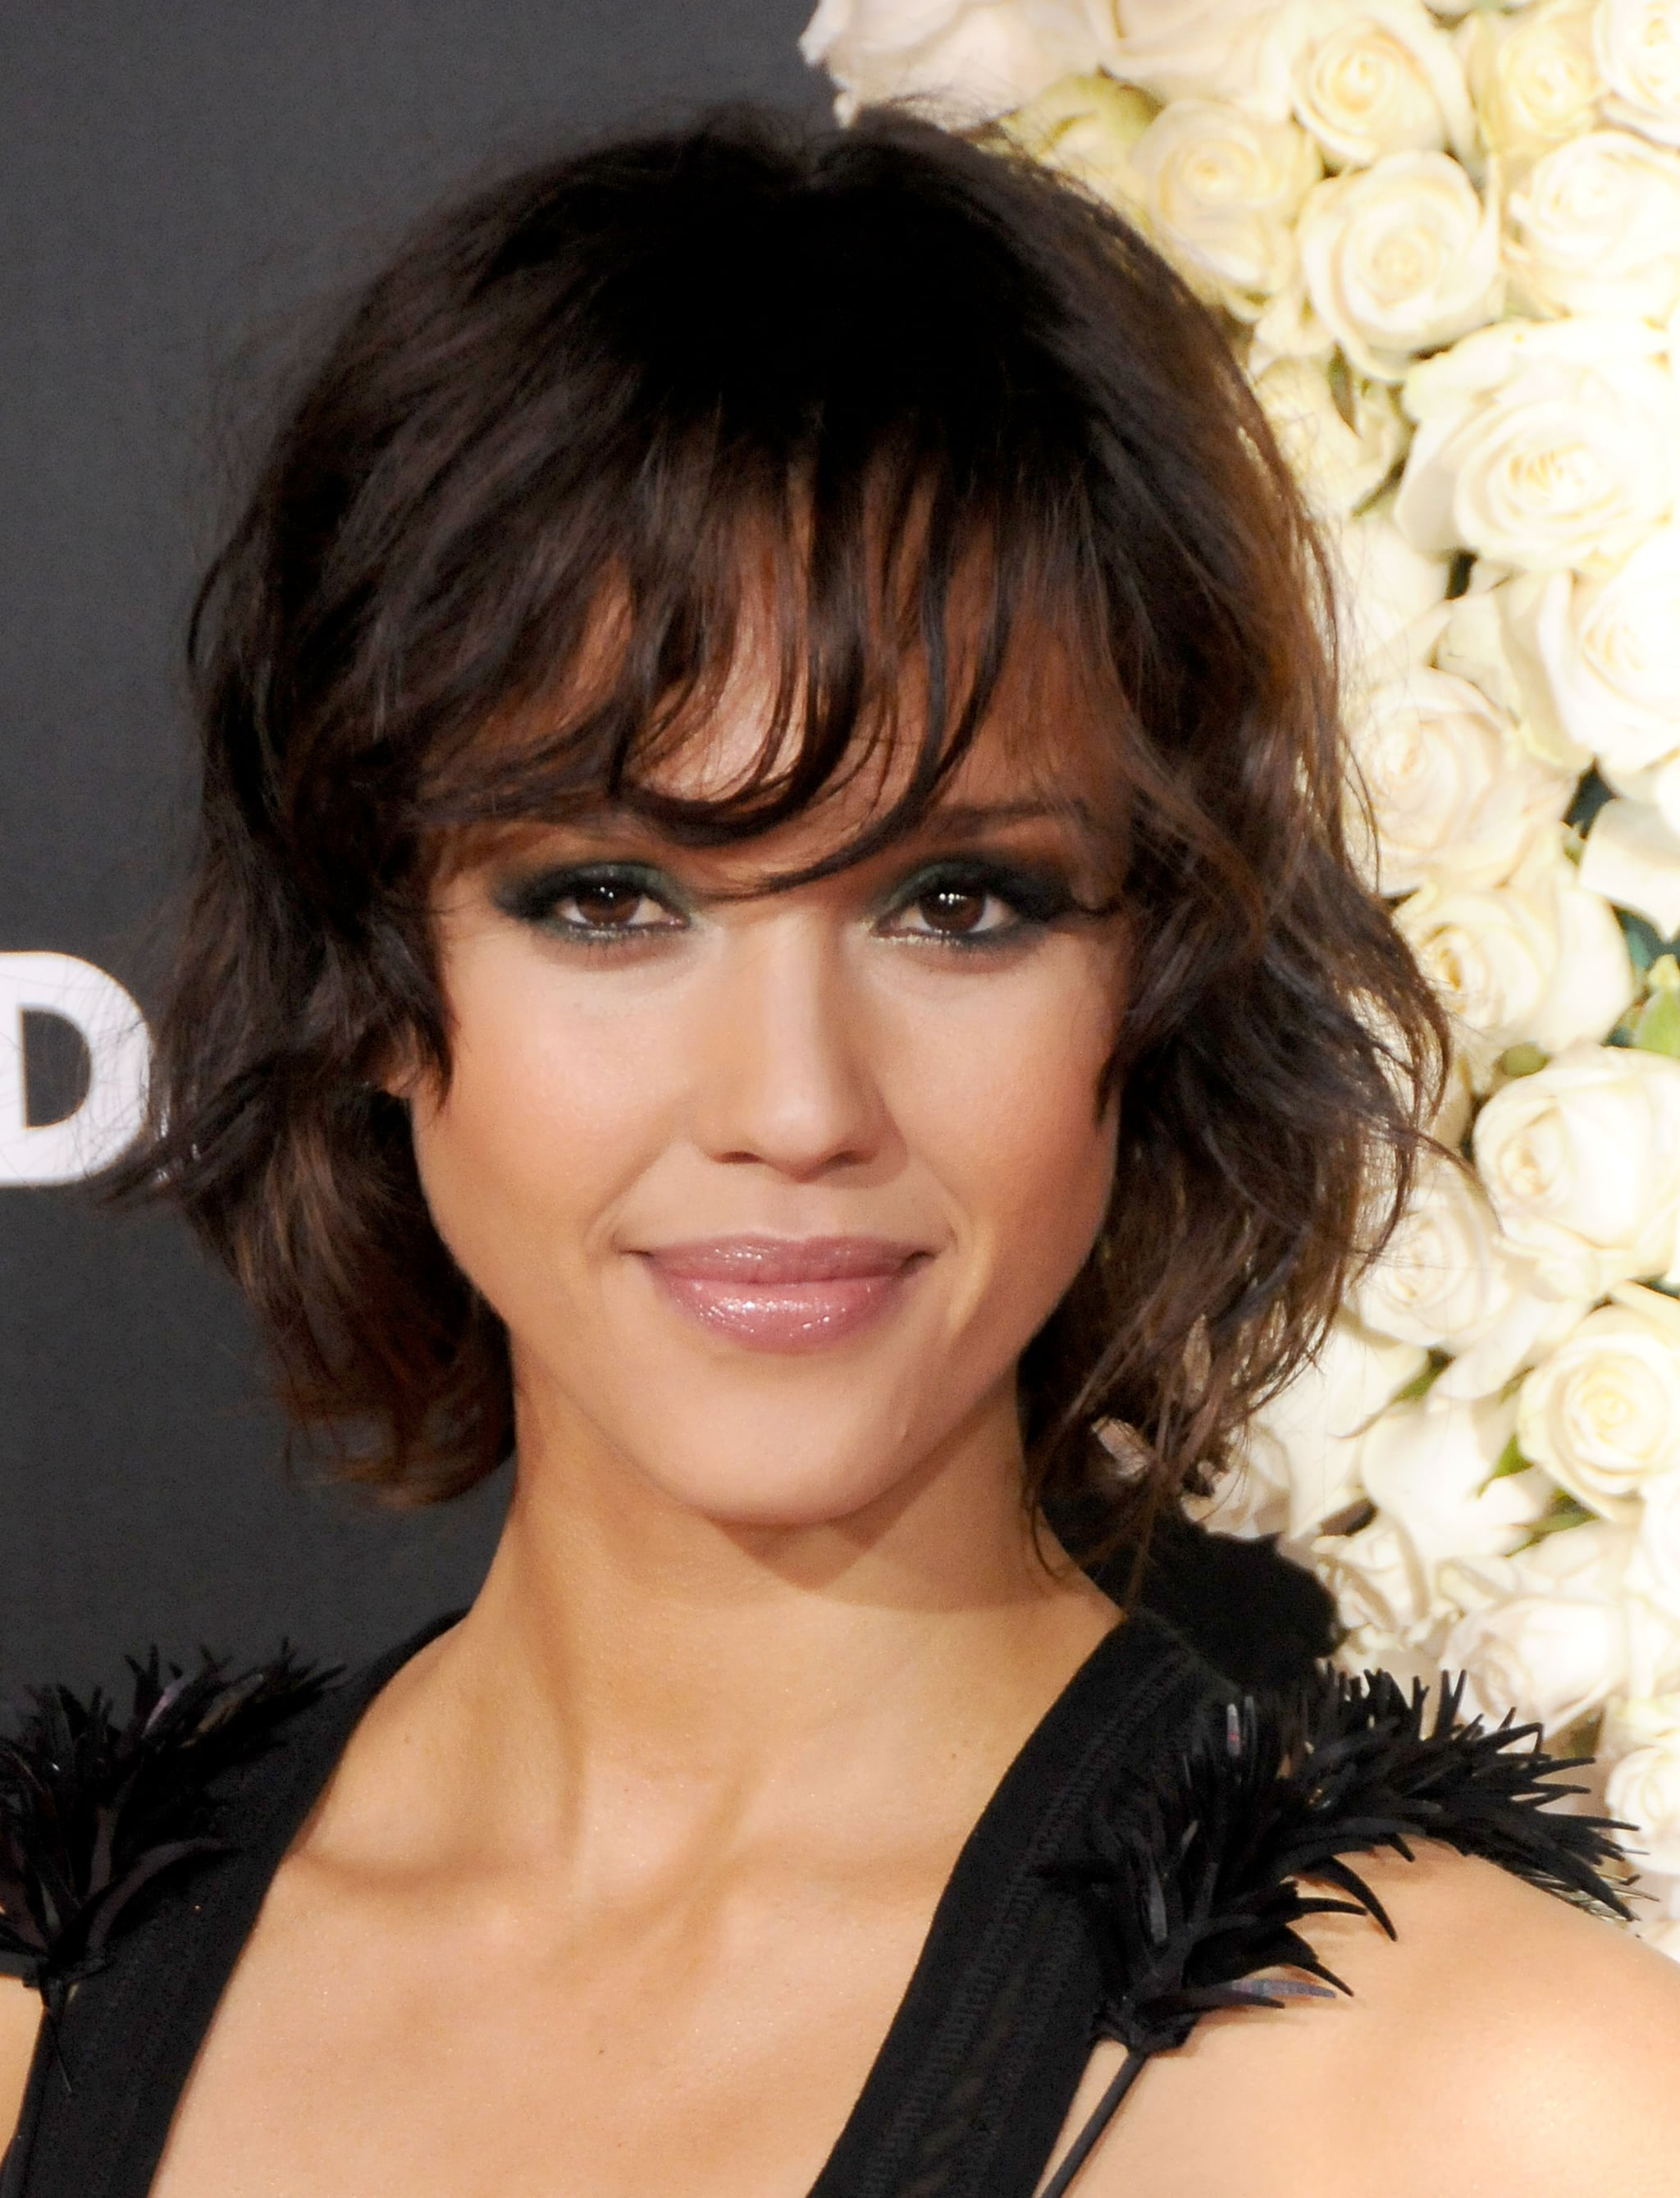 At the Valentine's Day premiere, Jessica showed off a short shag with a dark brunette color and a sultry, smoky eye.